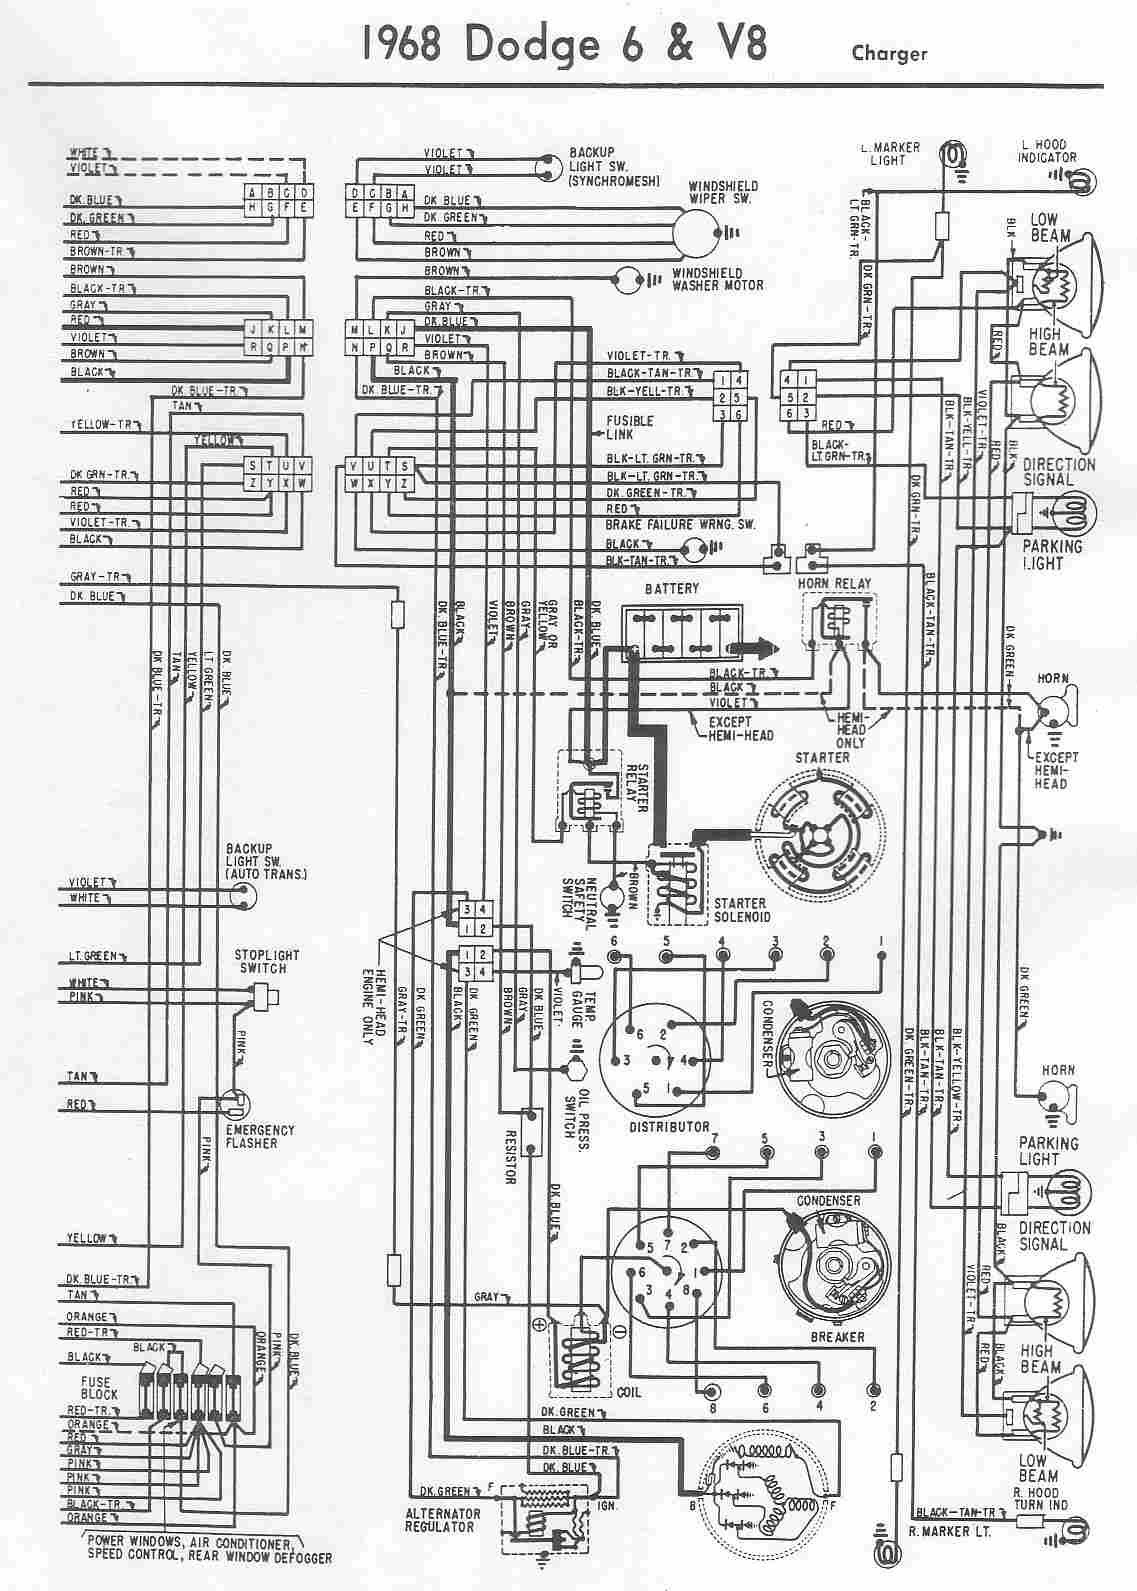 2004 Dodge Ram Tail Light Wiring Diagram